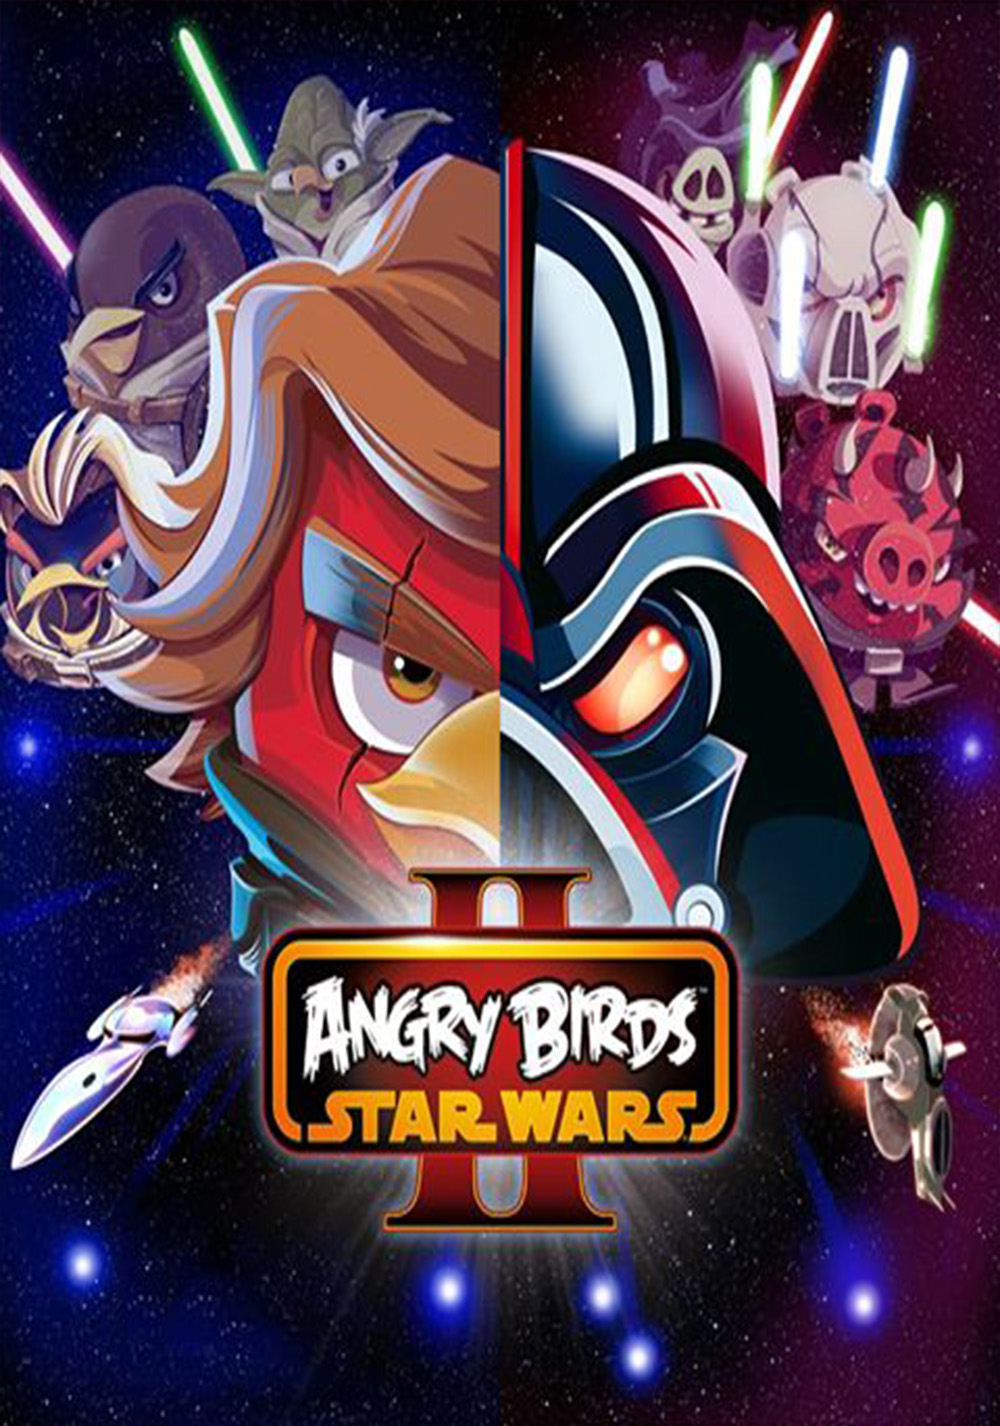 Angry Birds Star Wars - Play Angry Birds Star Wars Online ...